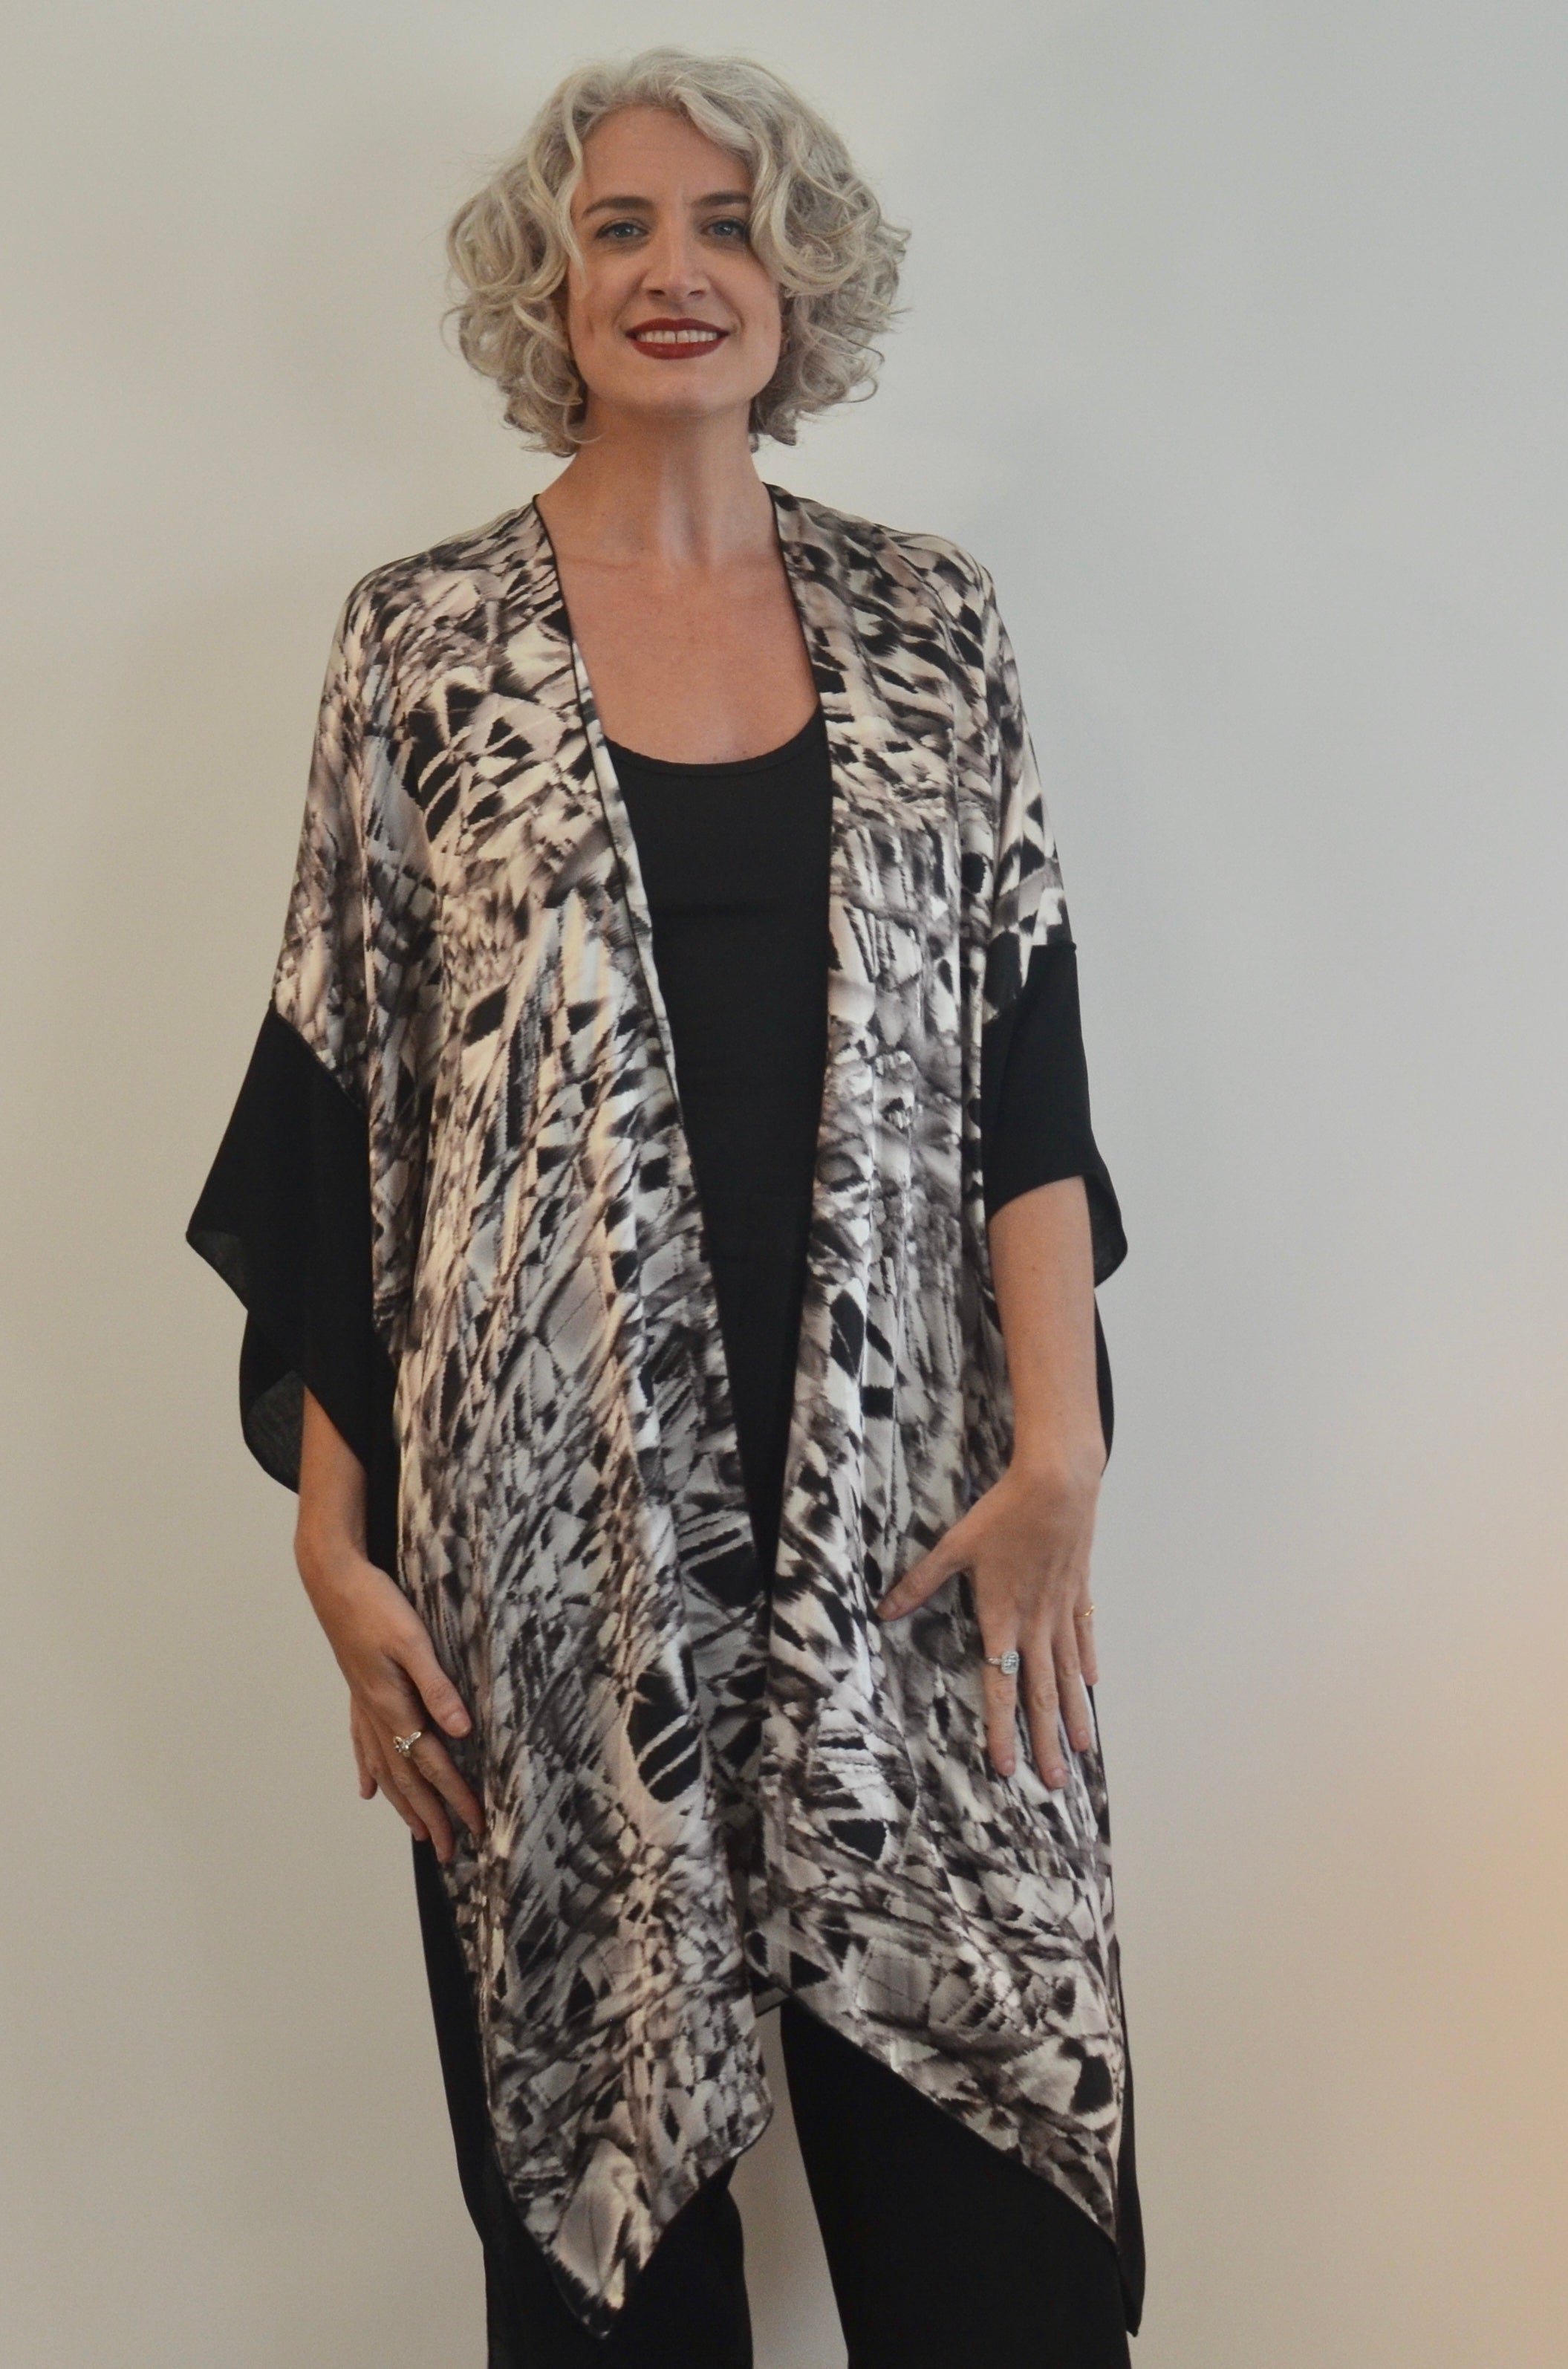 Silk Jacket and amazing poncho in one!